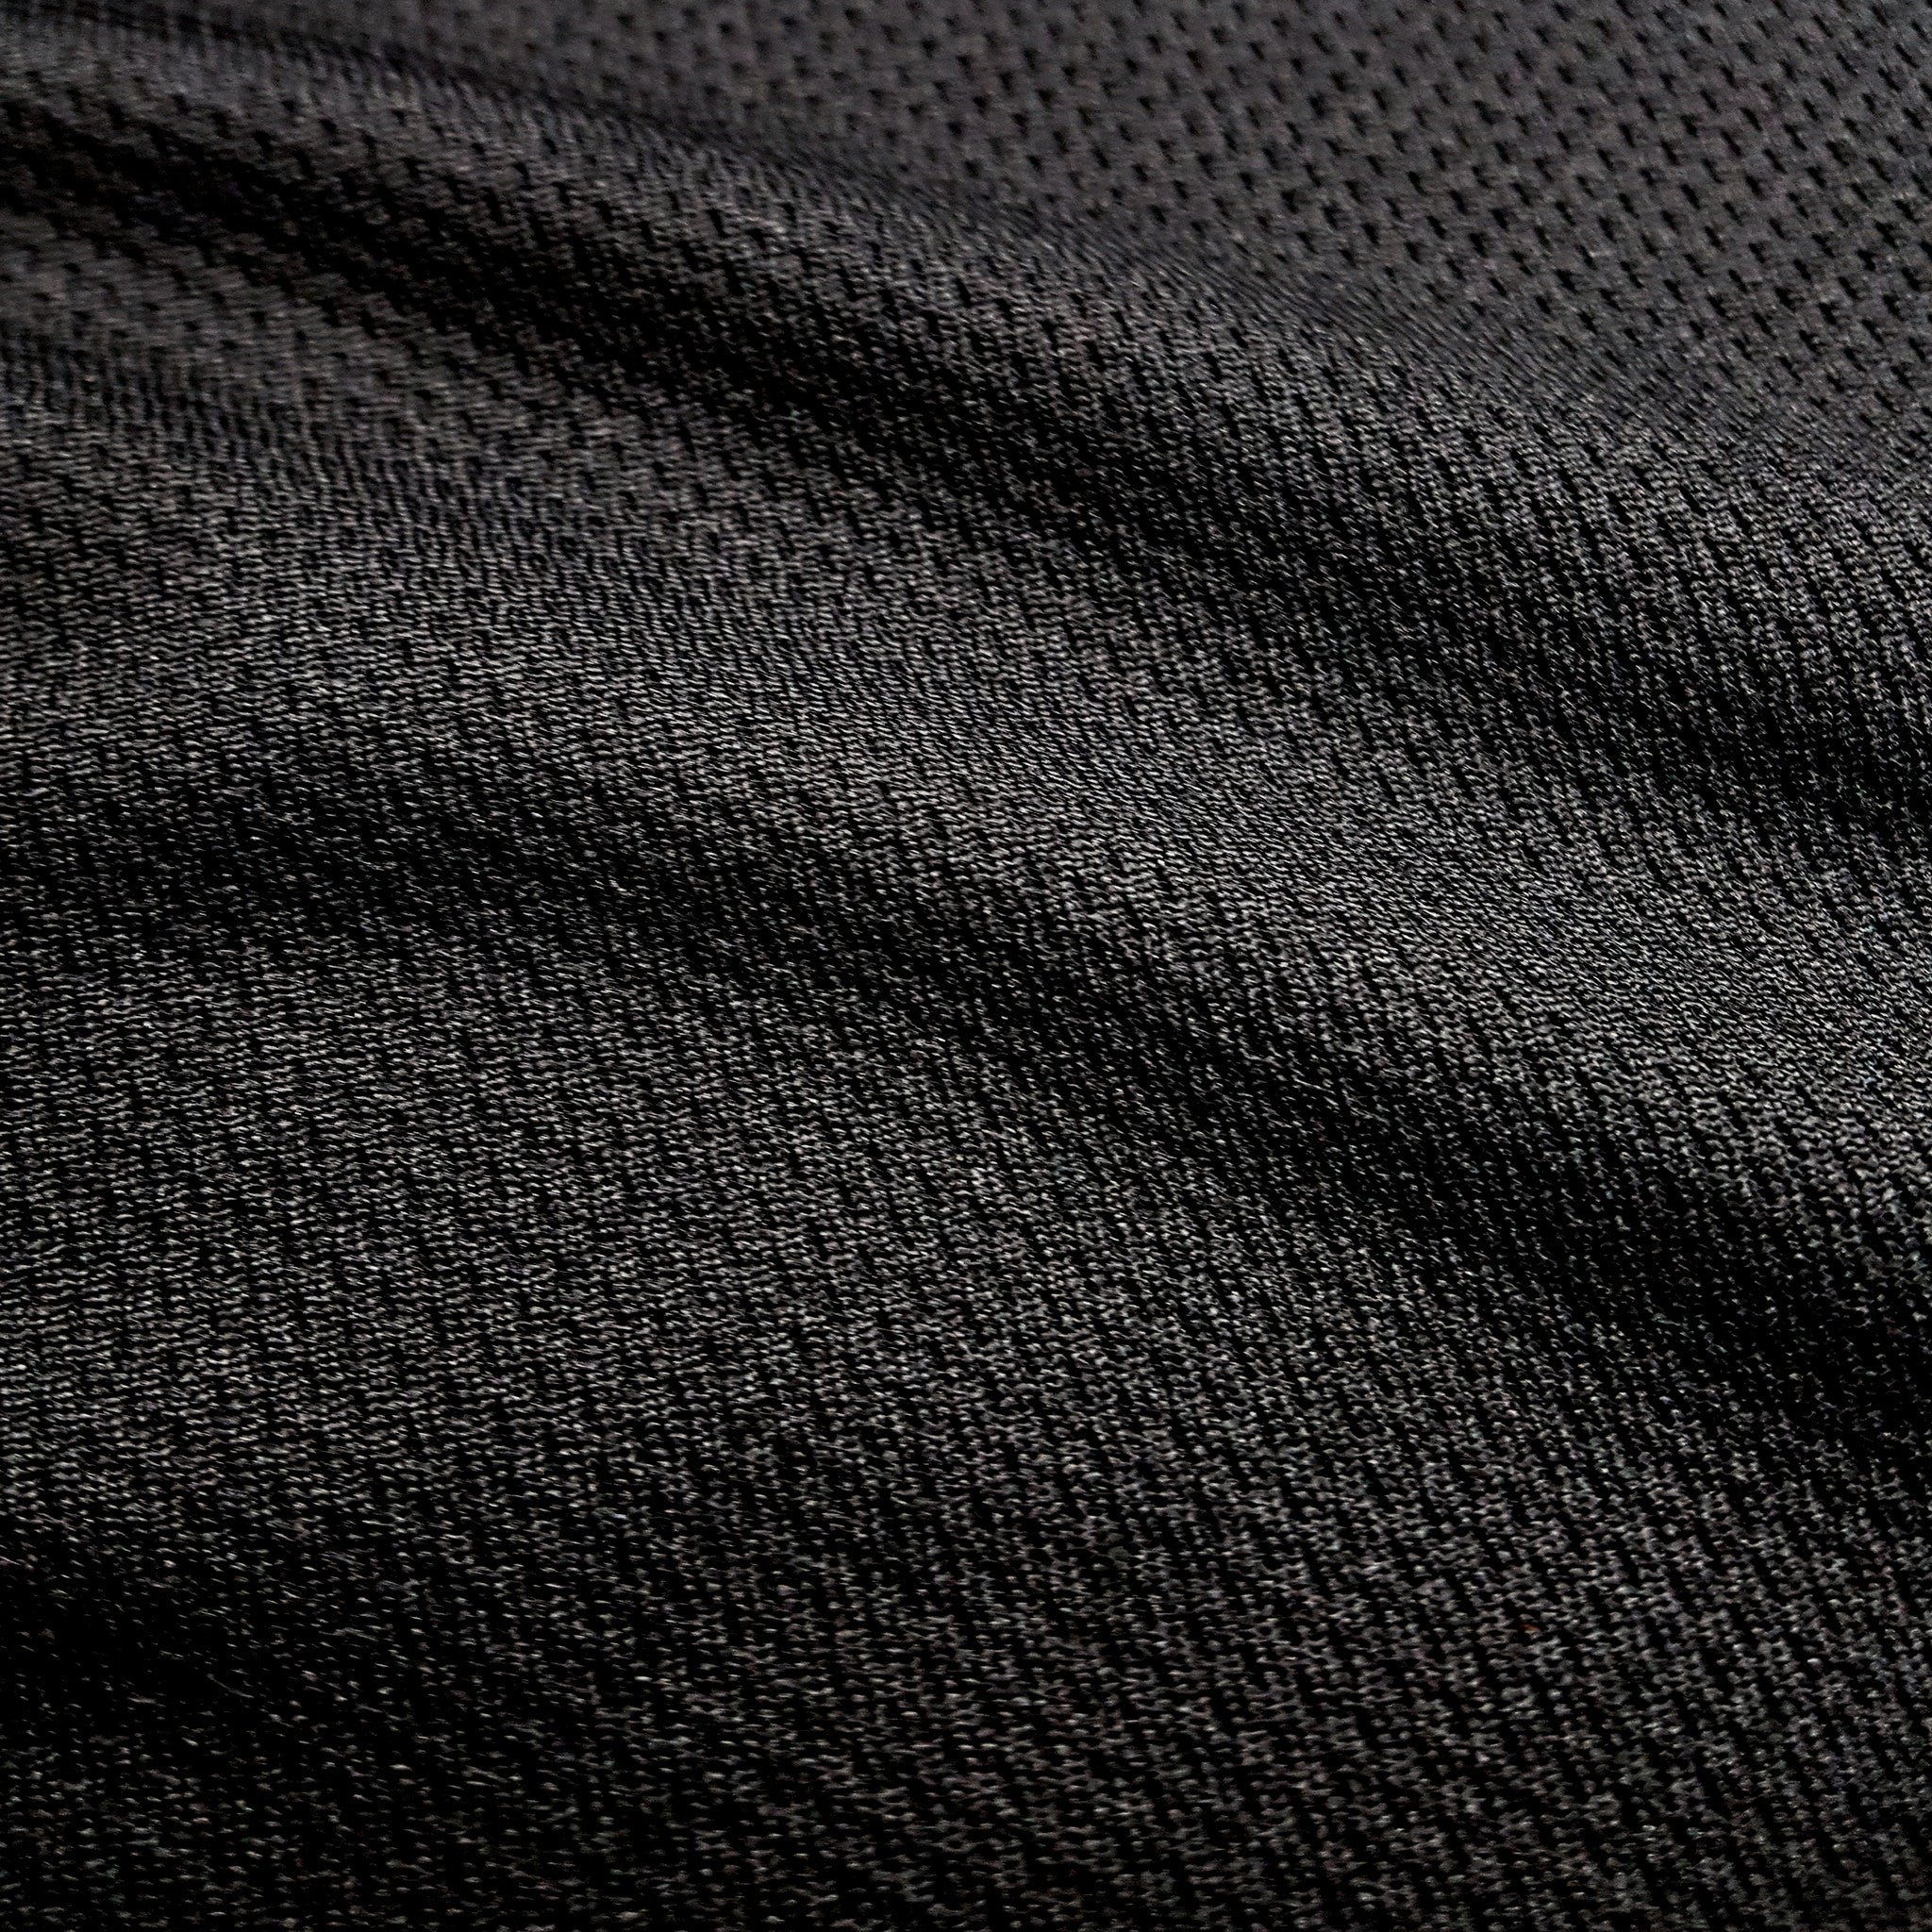 SportyFish Black Series black Long-sleeves t-shirt: Yellowfin Tuna(Japanese words) close-up view 4